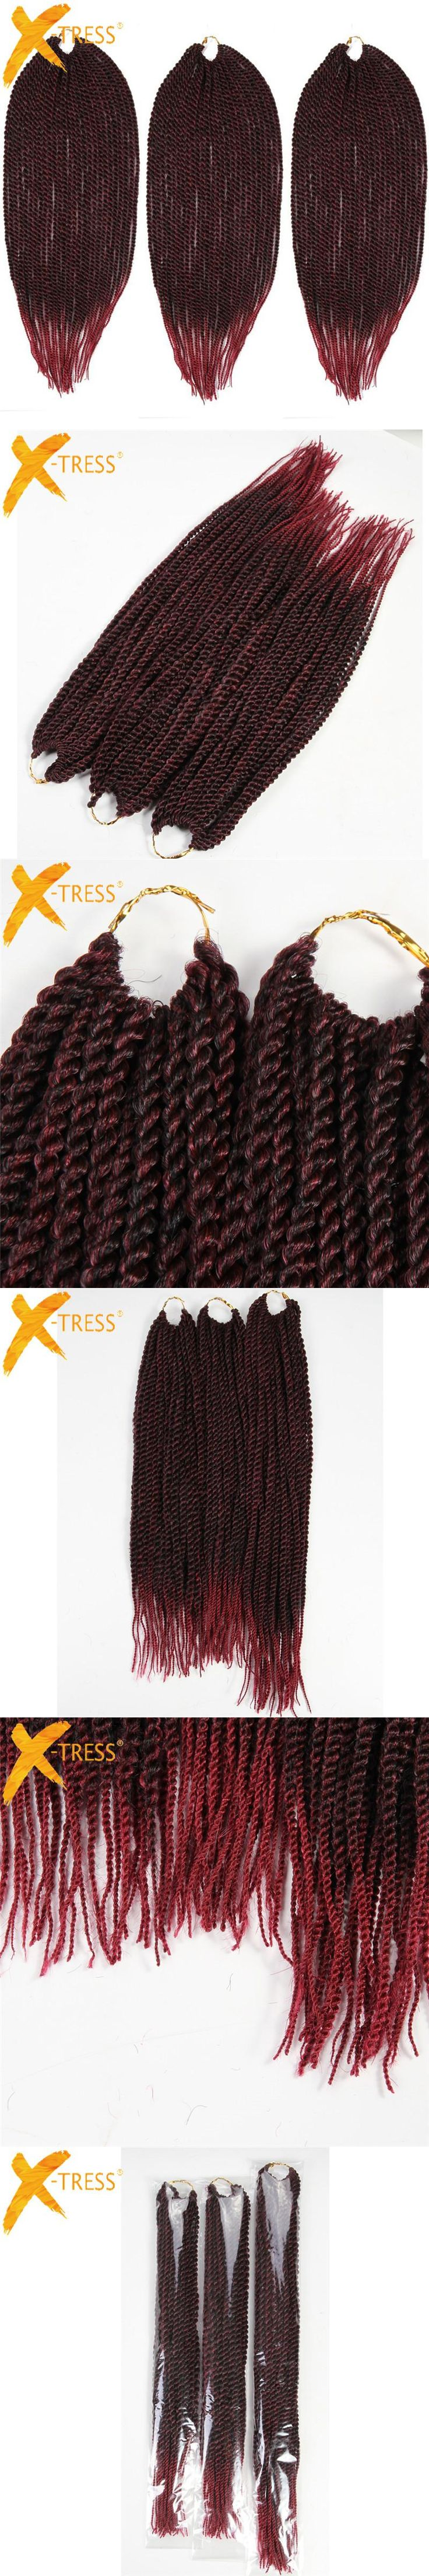 X-TRESS Synthetic Hair Senegalese Braiding Hair Extensions 3Pcs/Pack 18 20 22 inch Heat Resistant Ombre 81Strands Crochet Braids